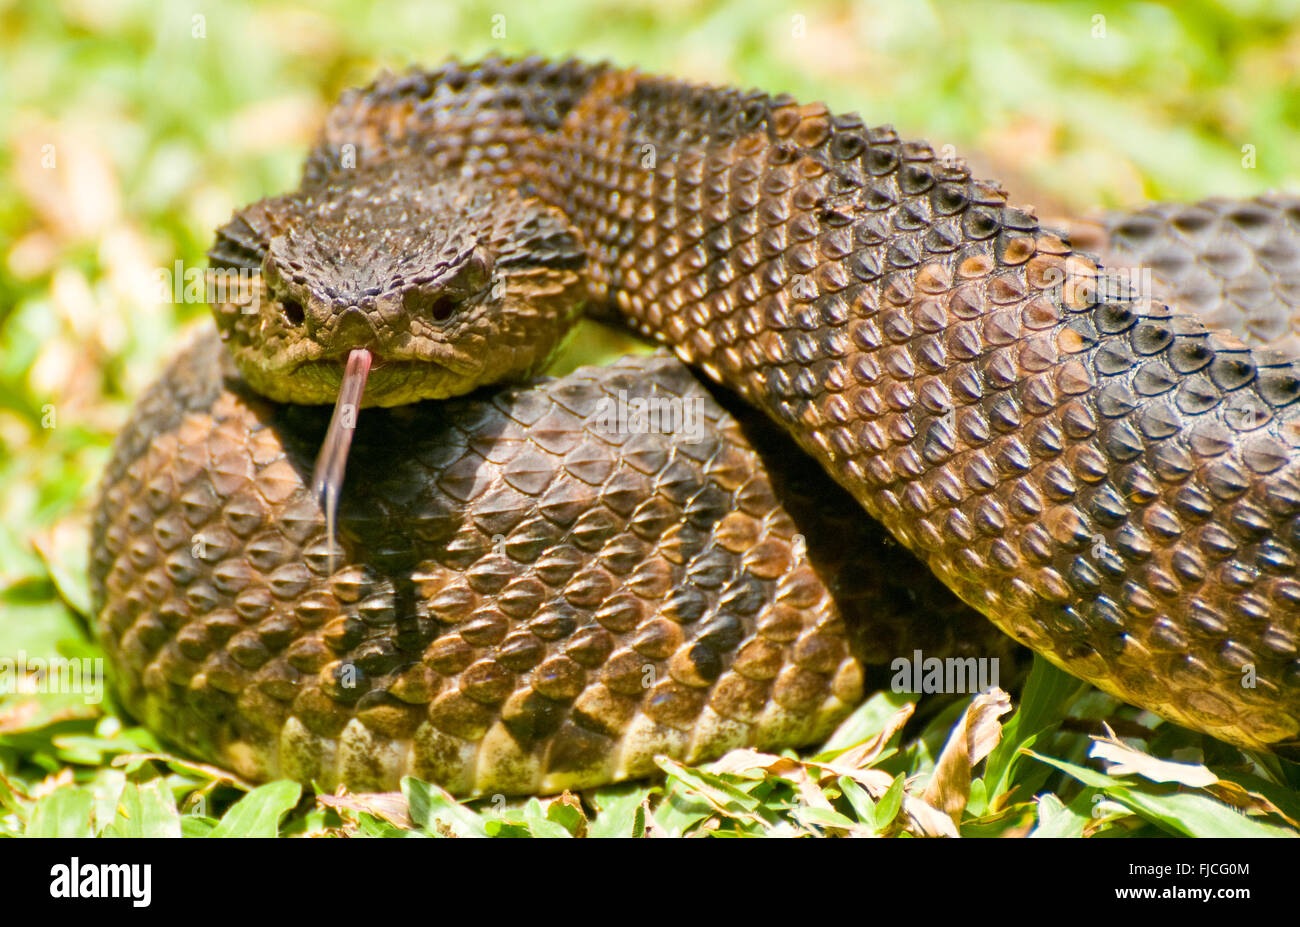 Wildlife, Reptiles, Mexican Jumping Pit Viper Snake, Costa Rica Stock Photo